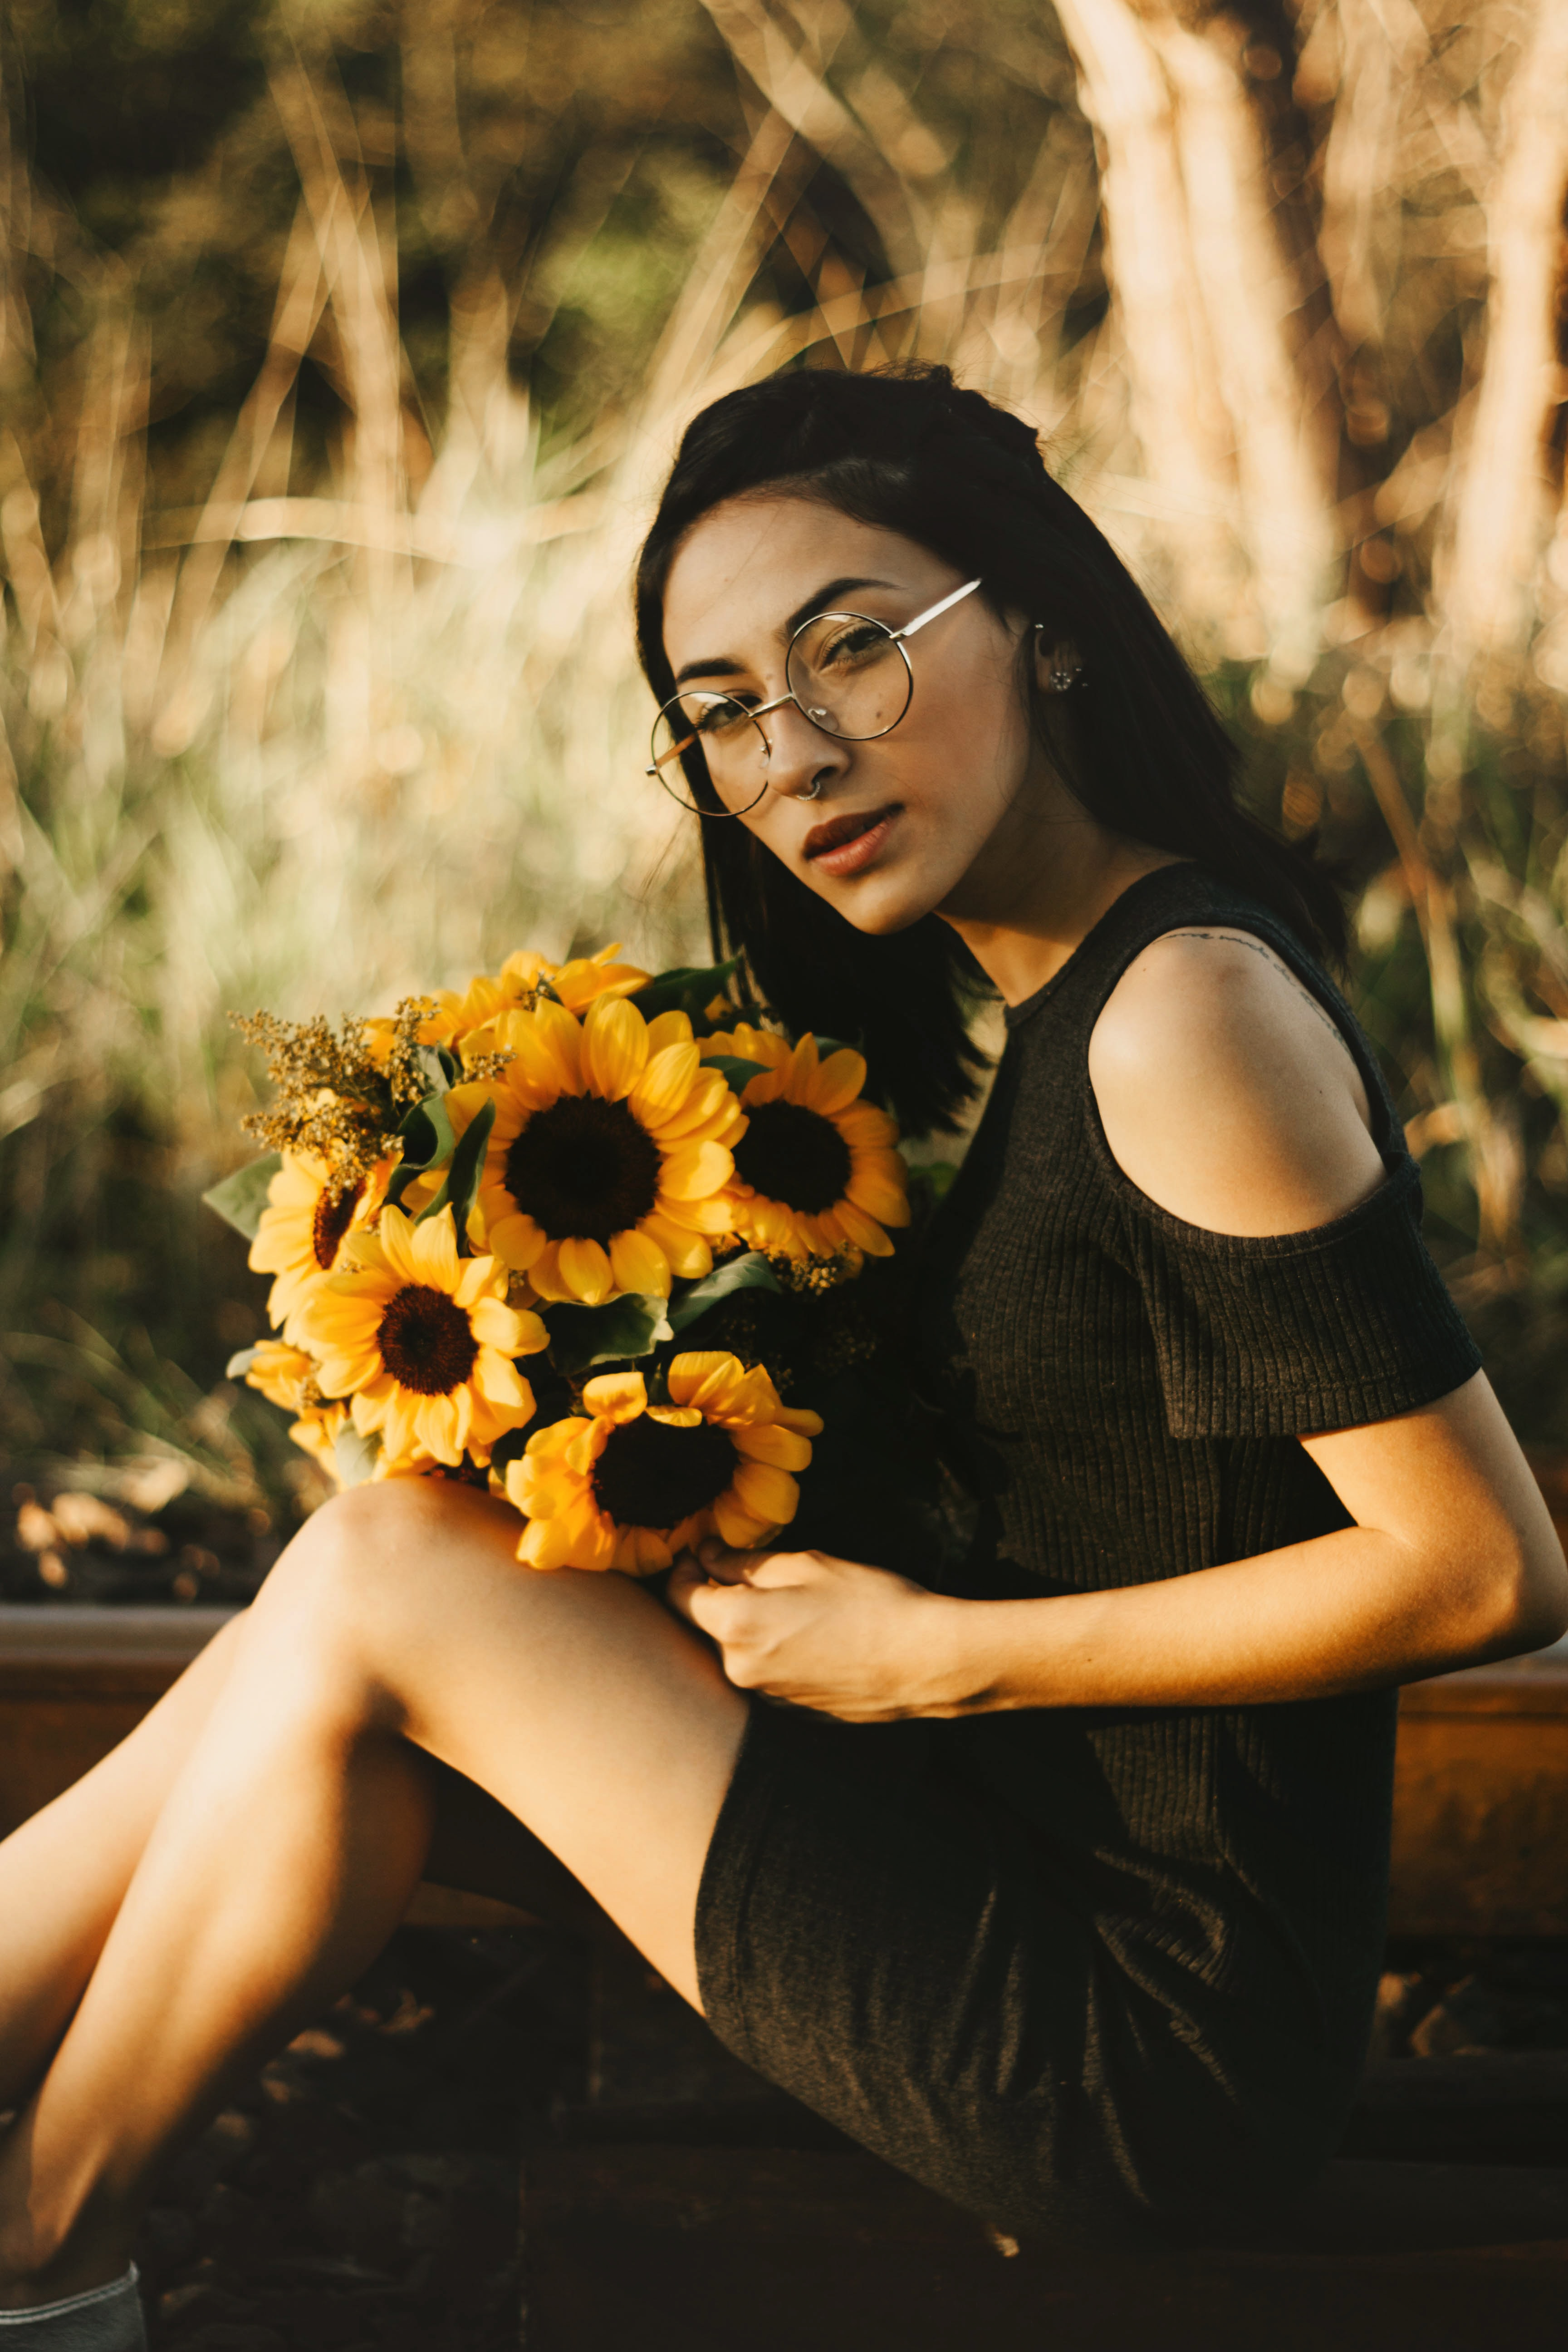 woman sitting on wood while holding sunflowers